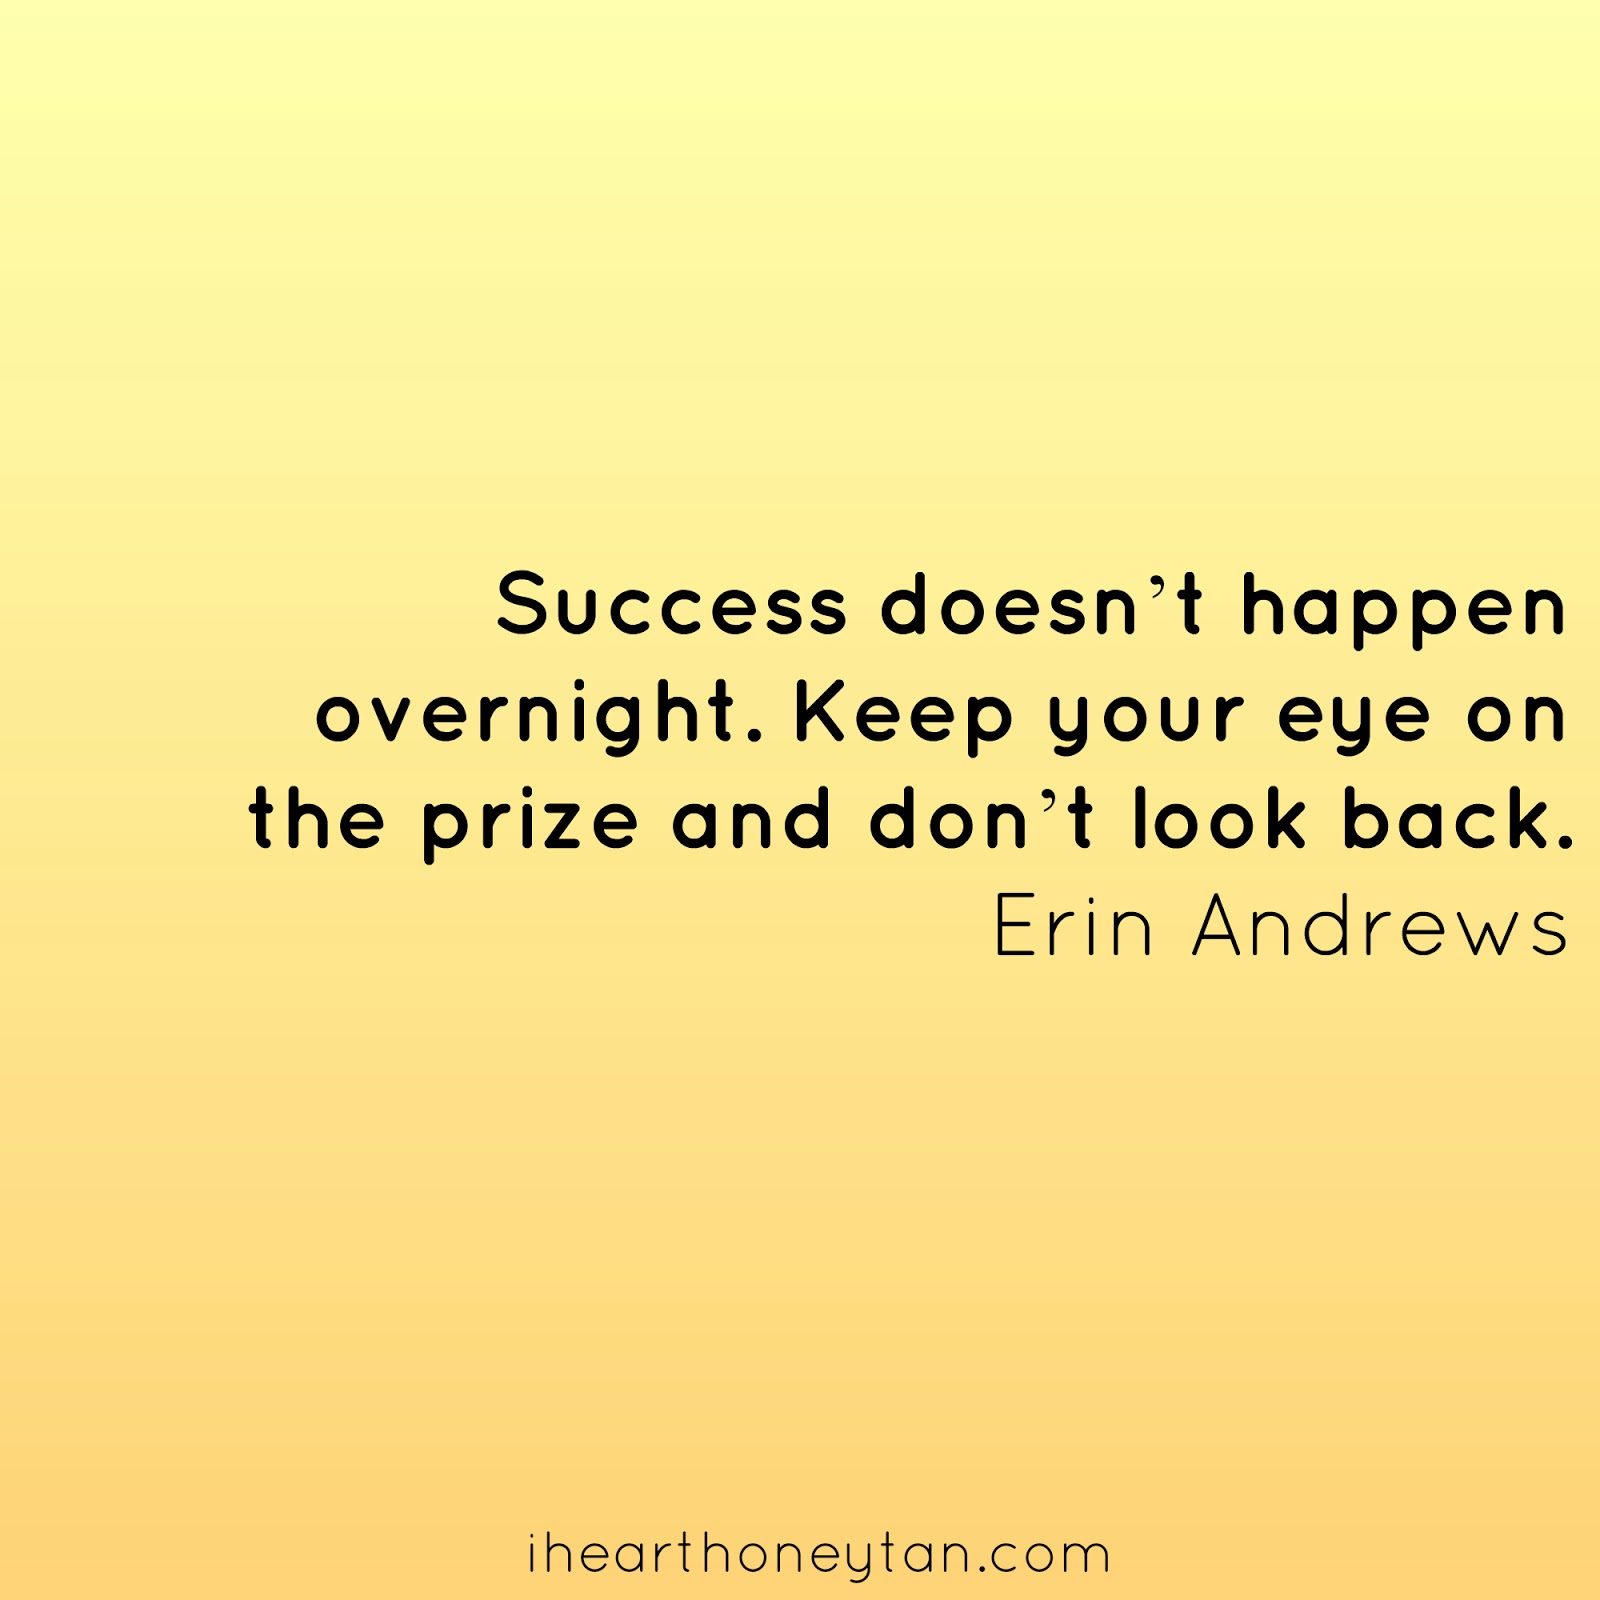 motivational success Erin Andrews quote